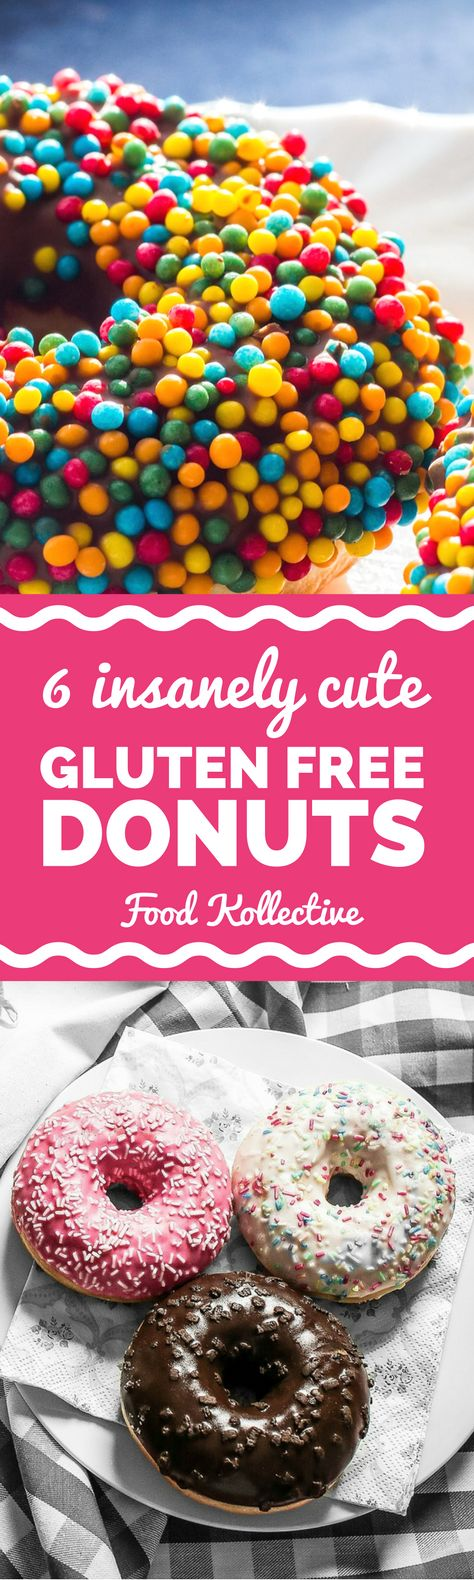 I was looking for gluten free donuts and these look adorable! There are recipes for gluten free chocolate donuts, vegan donuts, Paleo donuts, and more. These would be fun for a sweet breakfast or birthday party. Yes, please! Collected on FoodKollective.com